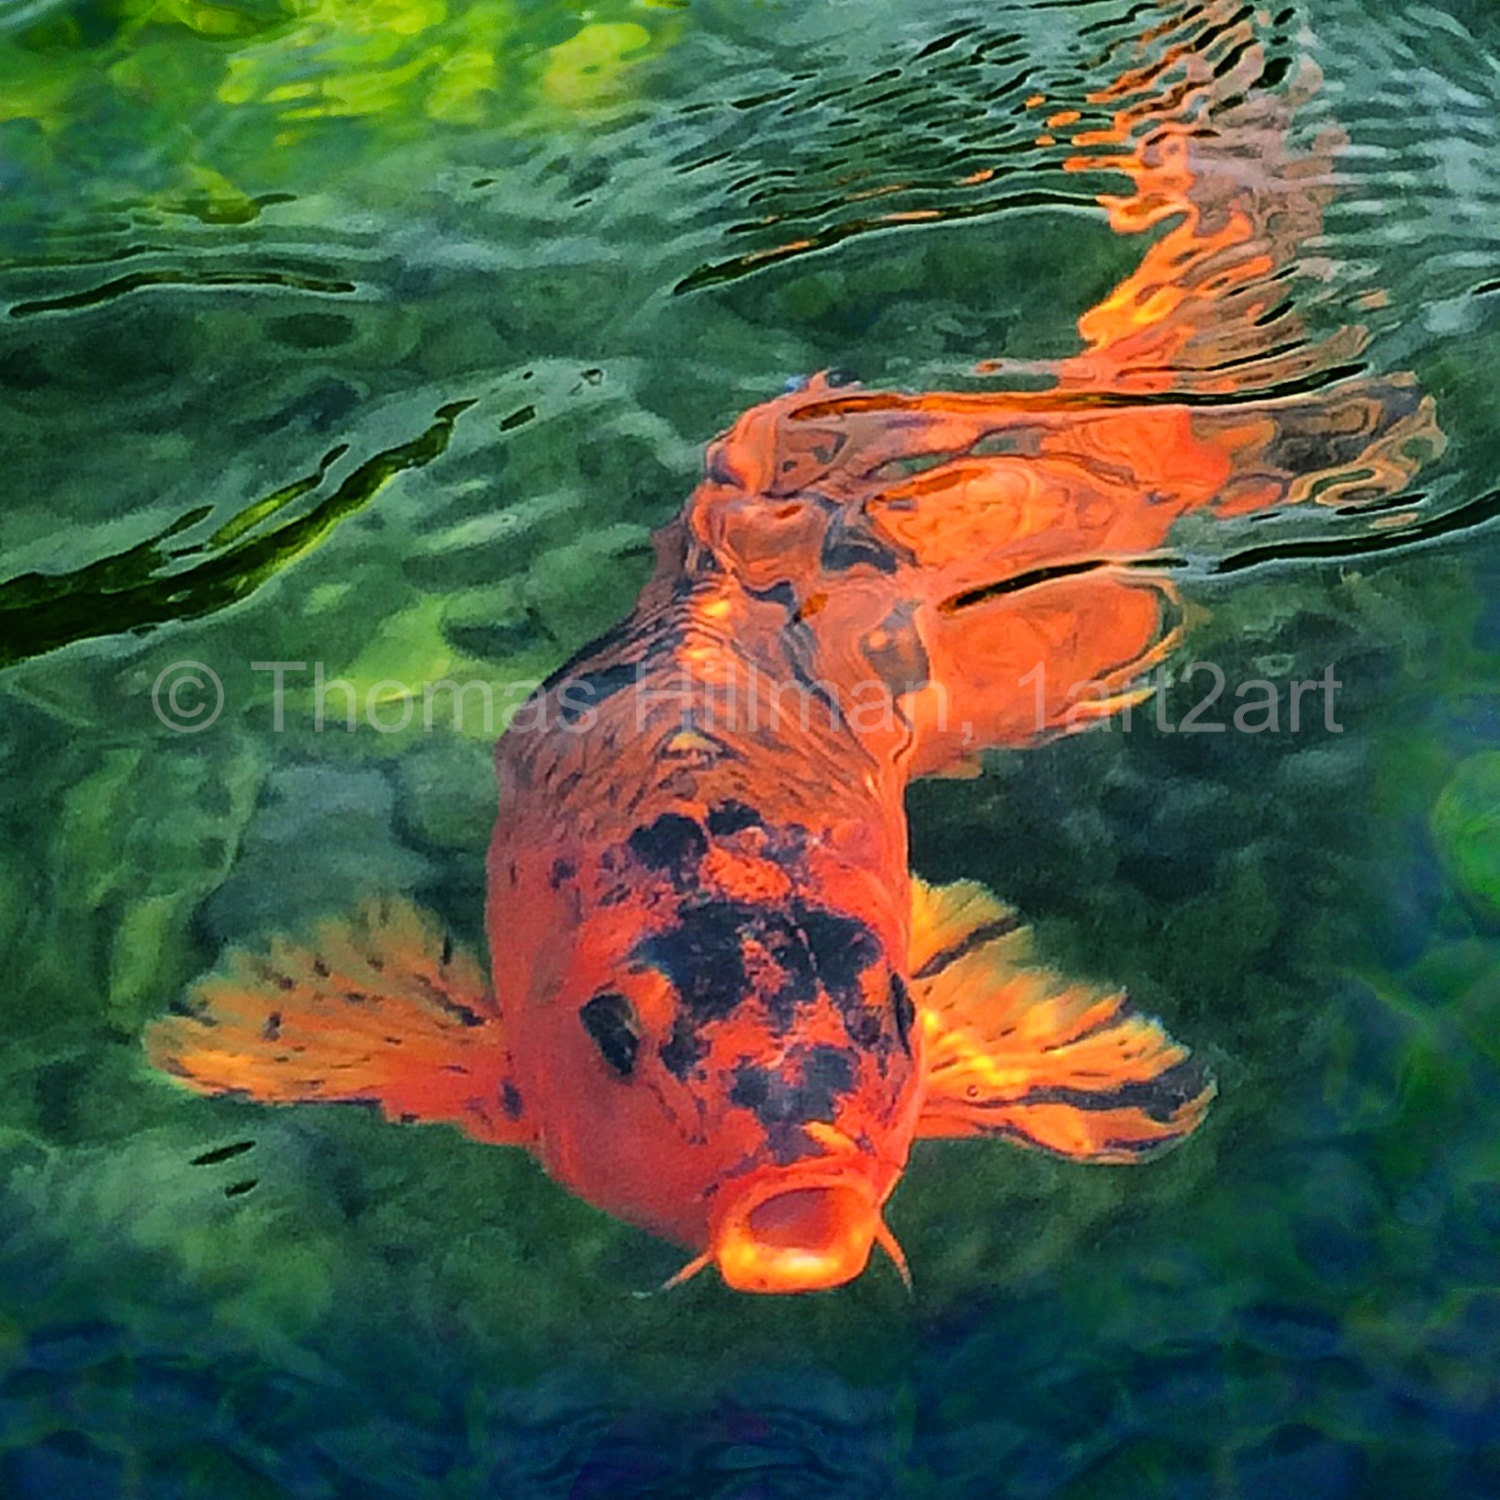 Koi Fish King of the Pond High Quality Gilcee Canvas Print